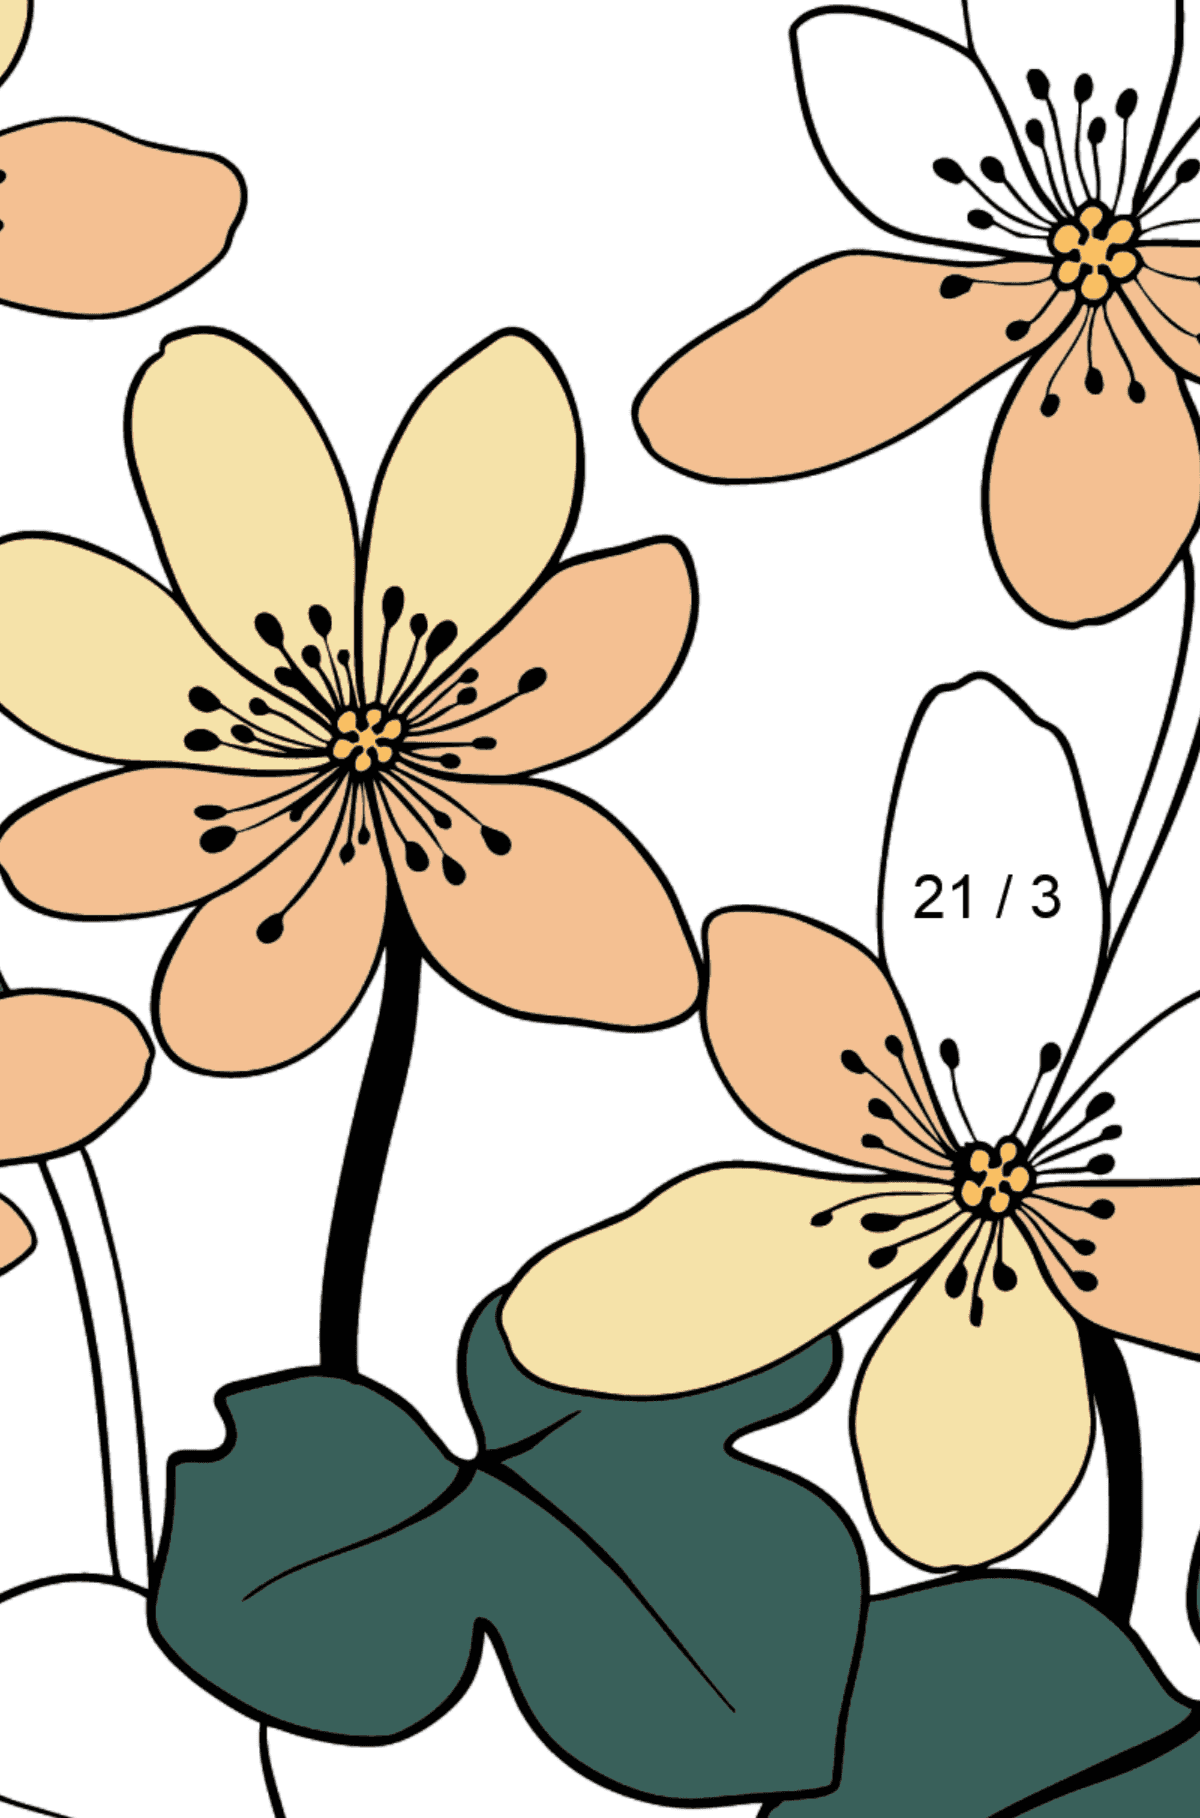 Flower Coloring Page - A Yellow and Orange Hepatica - Math Coloring - Division for Kids